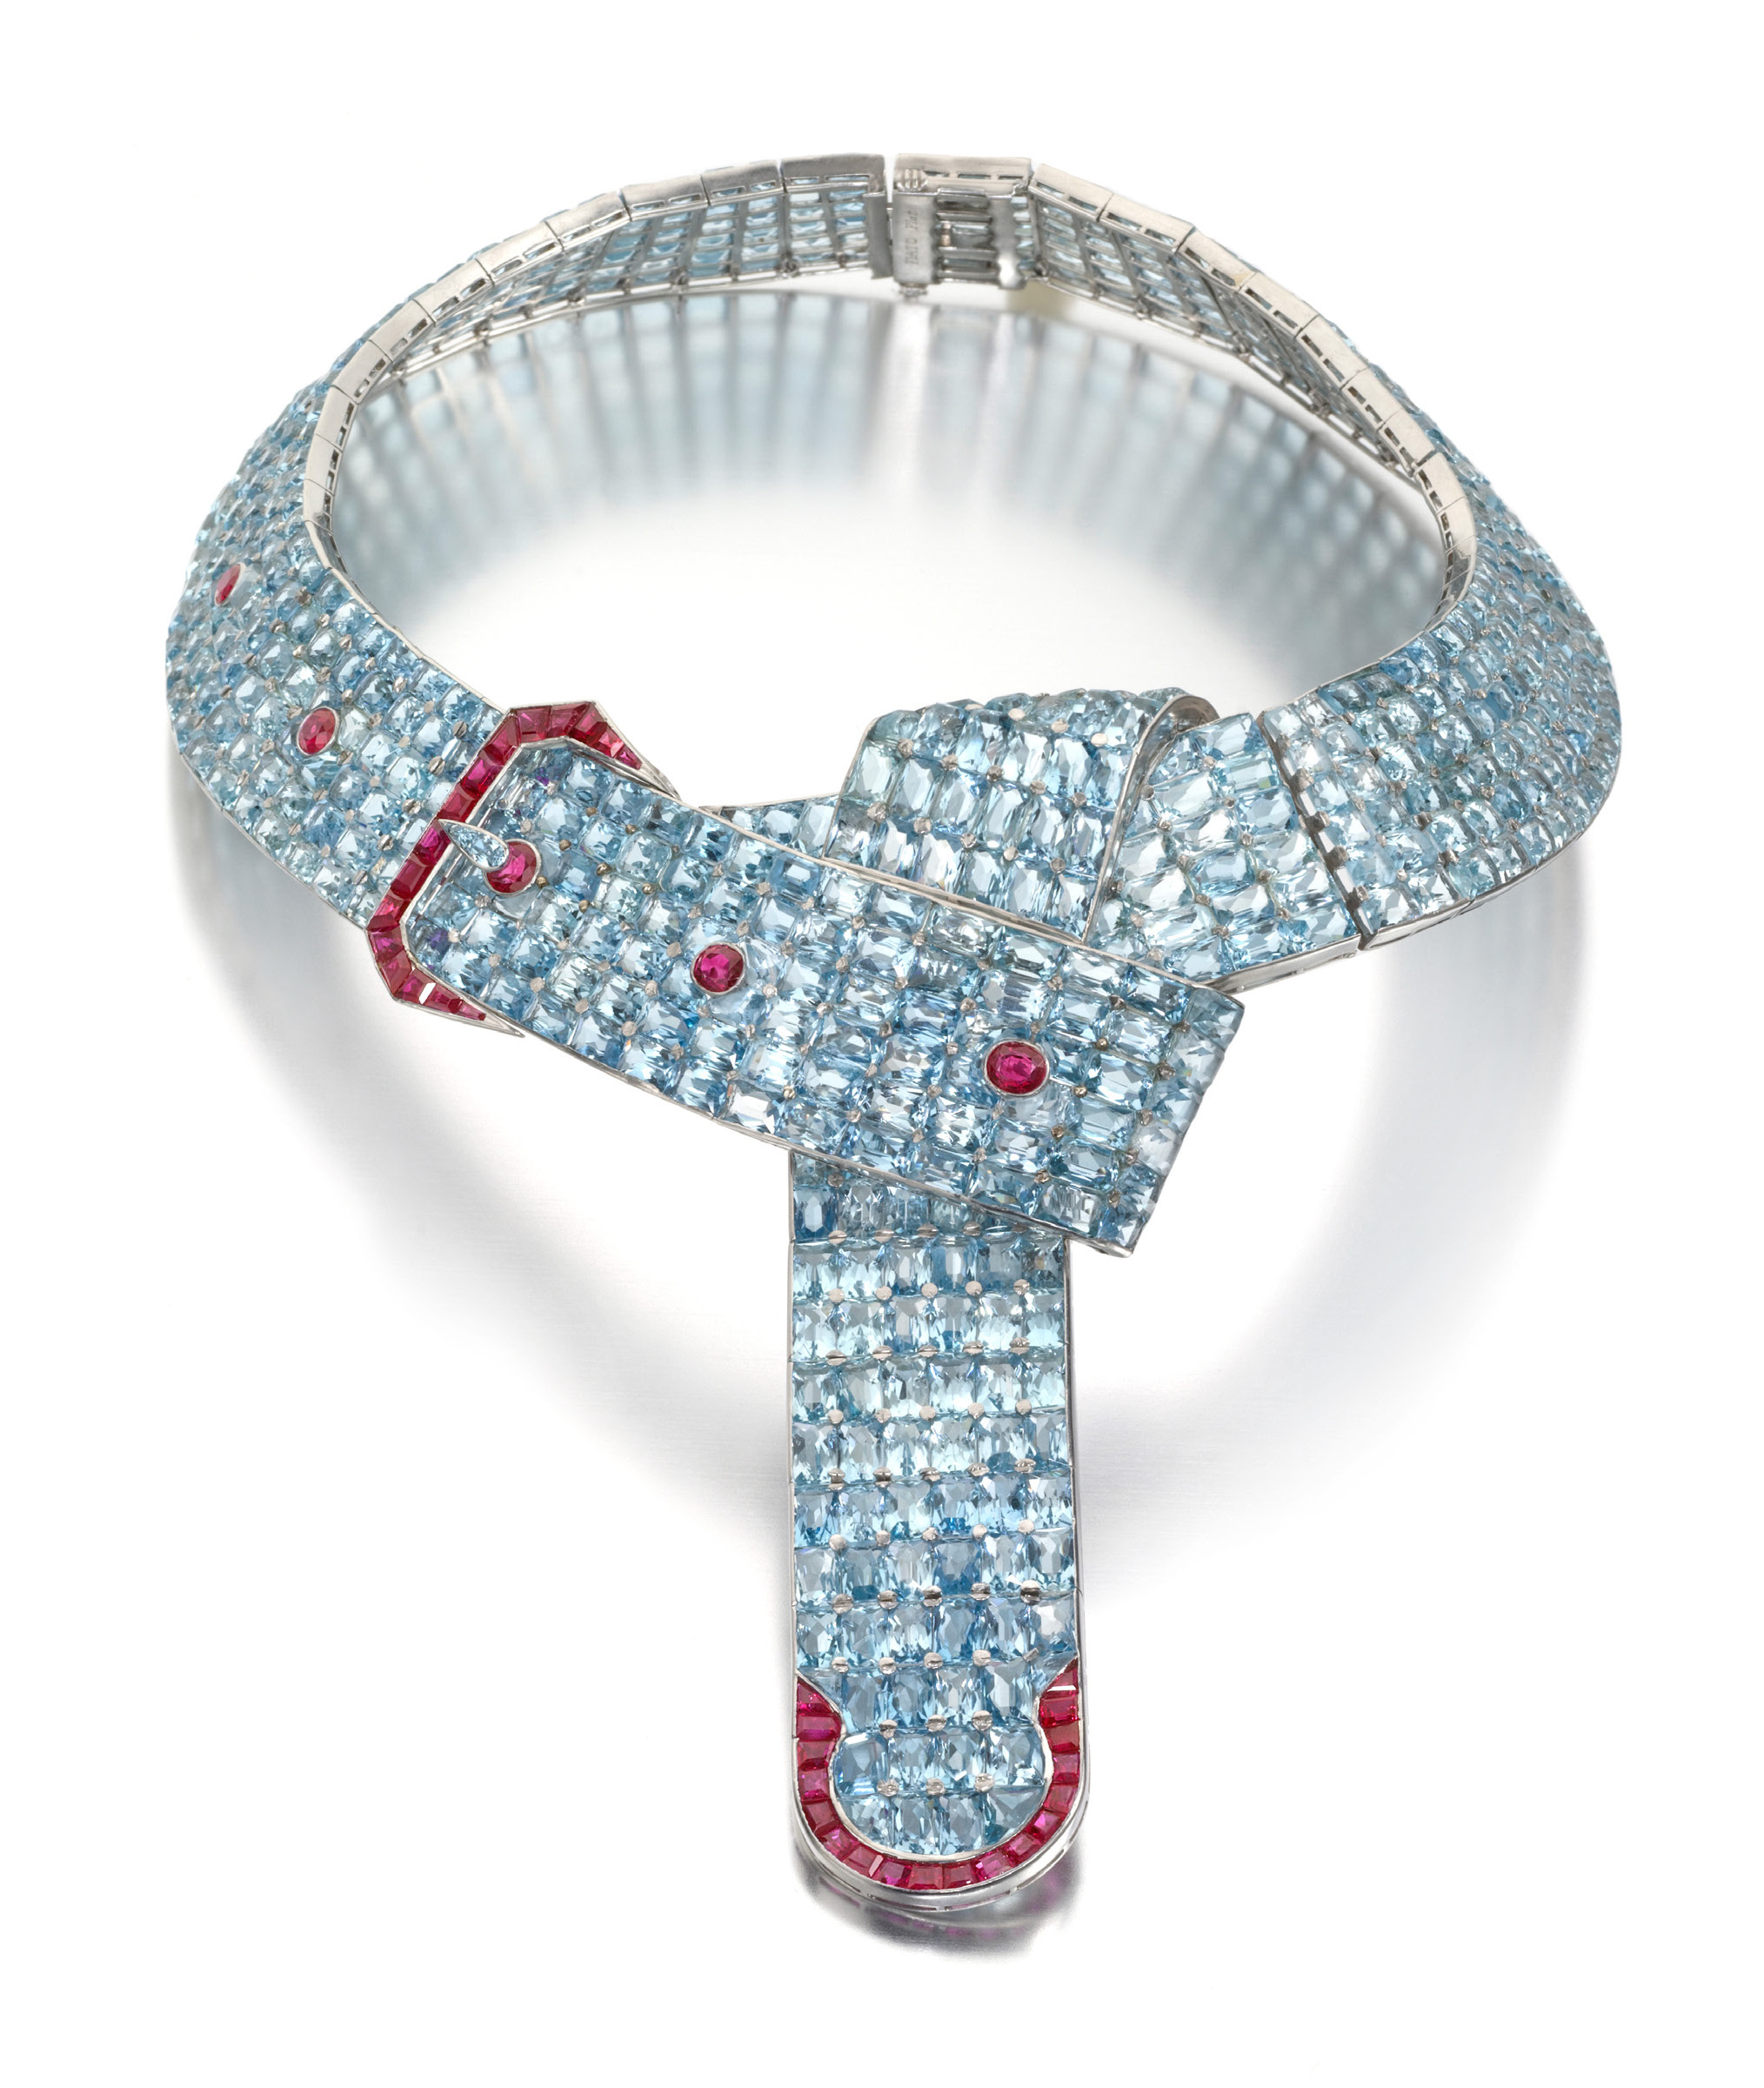 Aquamarine and Ruby Belt with a Buckle Necklace Designed by Fulco, Duke of Verdura, for Paul Flato. New York, circa 1935. Semi-flexible band of pave-set fancy brilliant-cut aquamarines accented with contrasting oval-cut and fancy-cut rubies detailing the buckle, eyelets, and strap trim. Mounted in platinum. 566 aquamarines and 39 rubies.